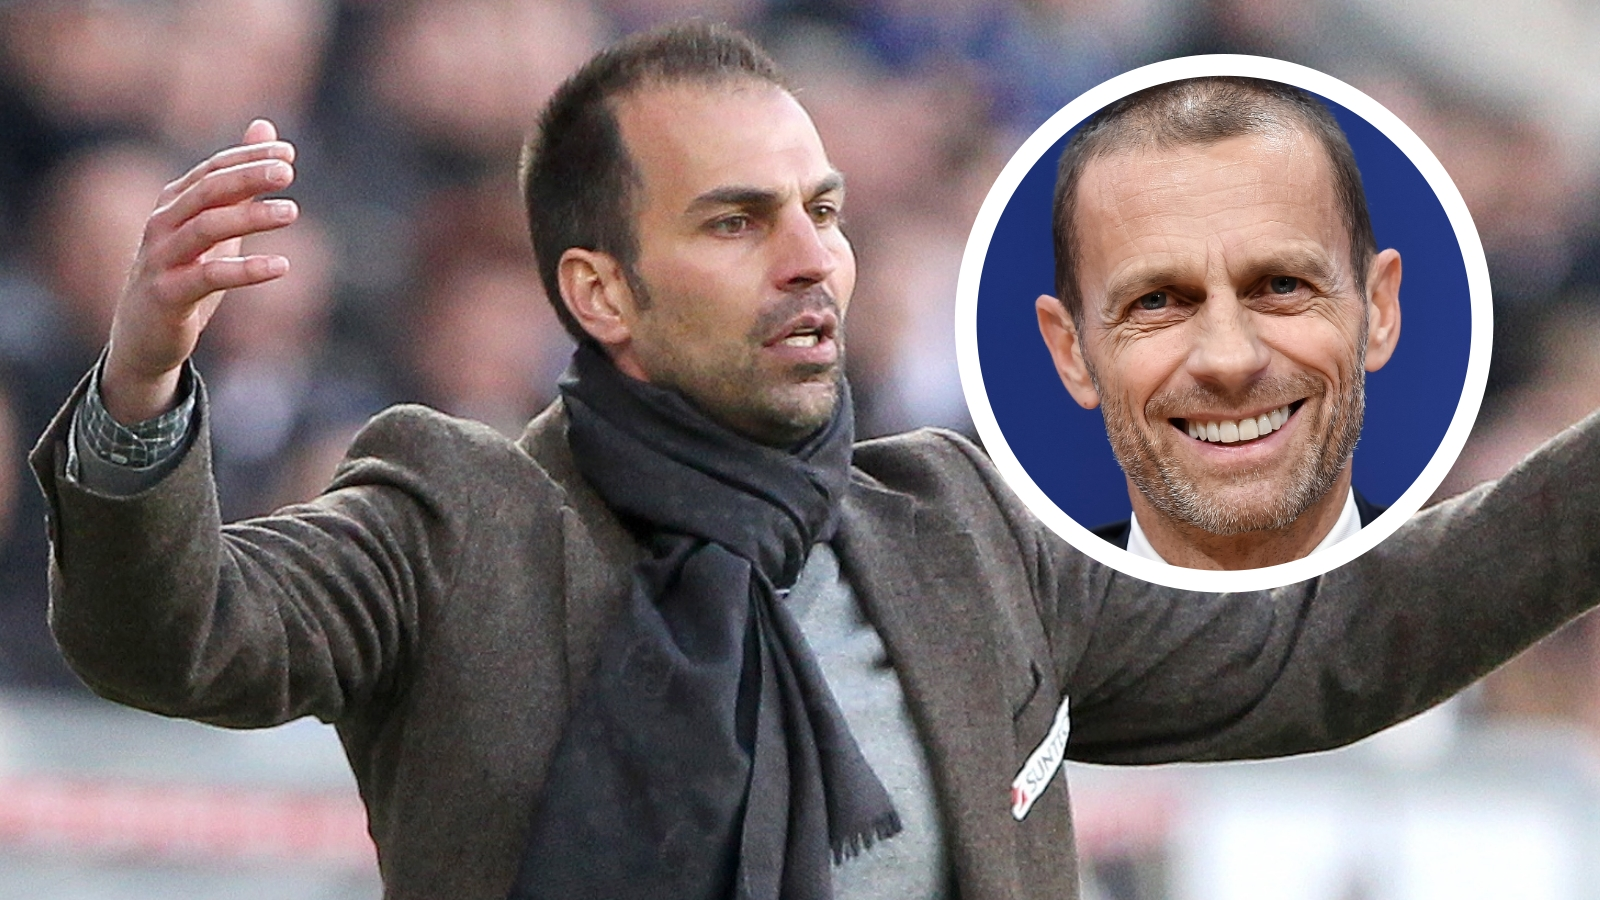 'Champions League reforms are sh*t to the power of 10 too!' – Former Liverpool star Babbel | Goal.com